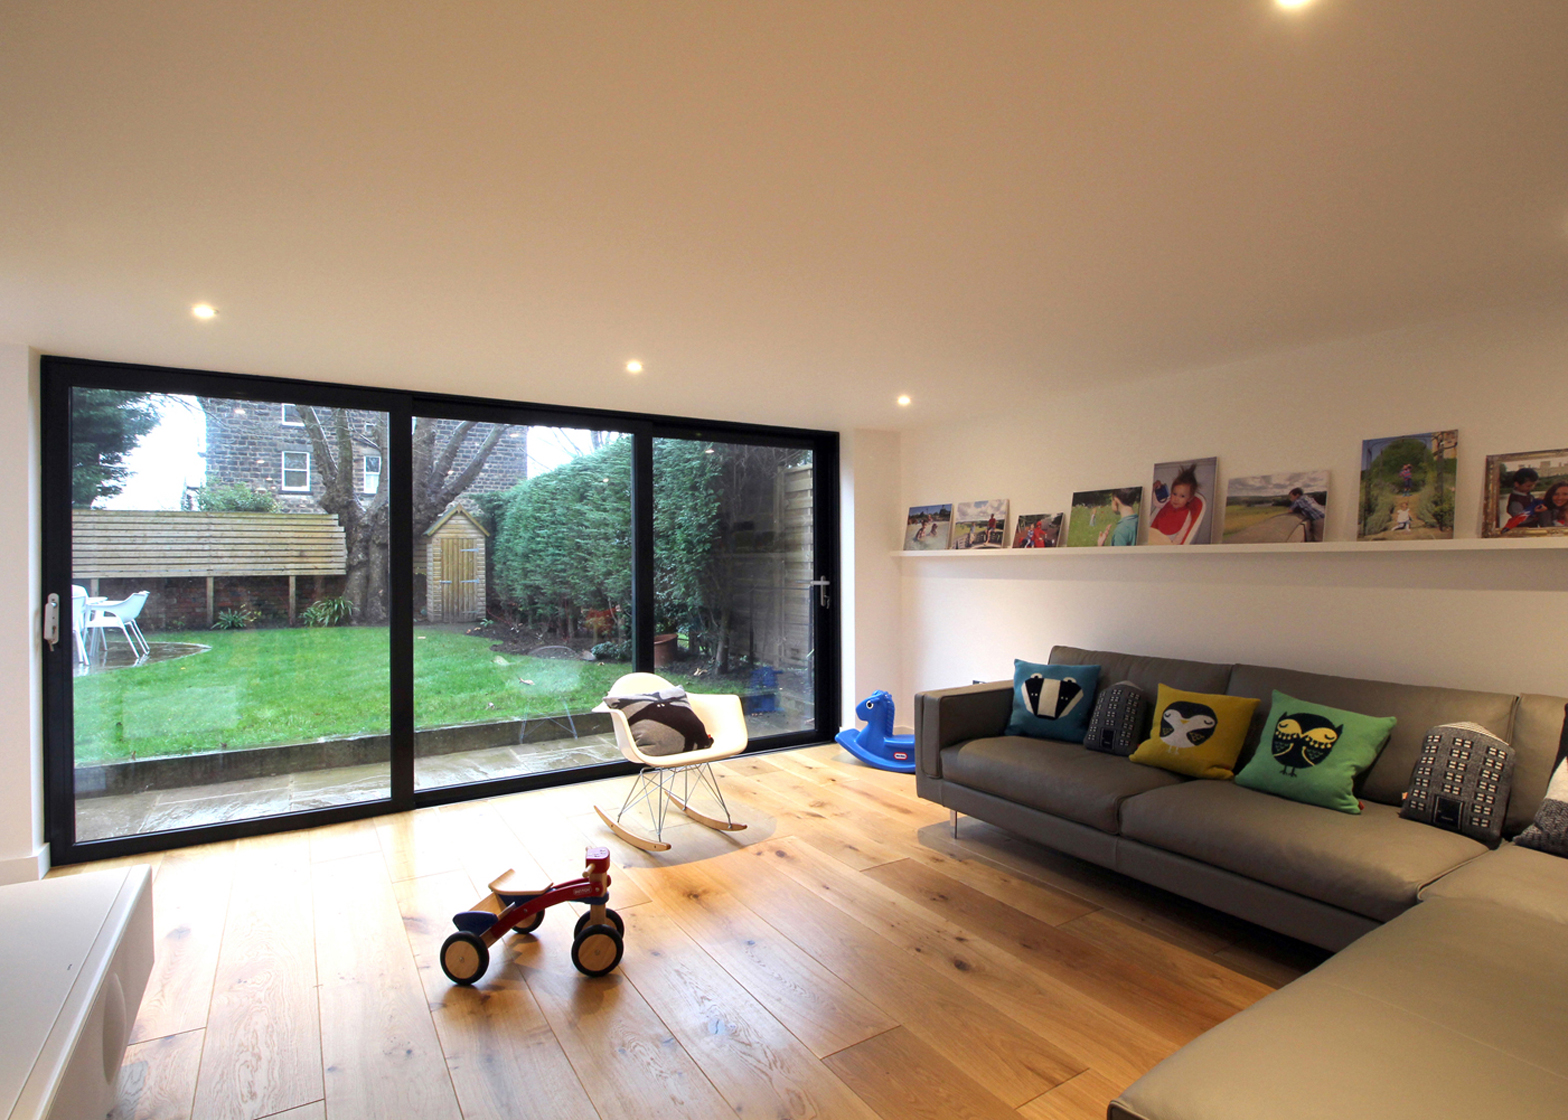 Contemporary Lean-to; Harrogate, Yorkshire, England, by Doma Architects